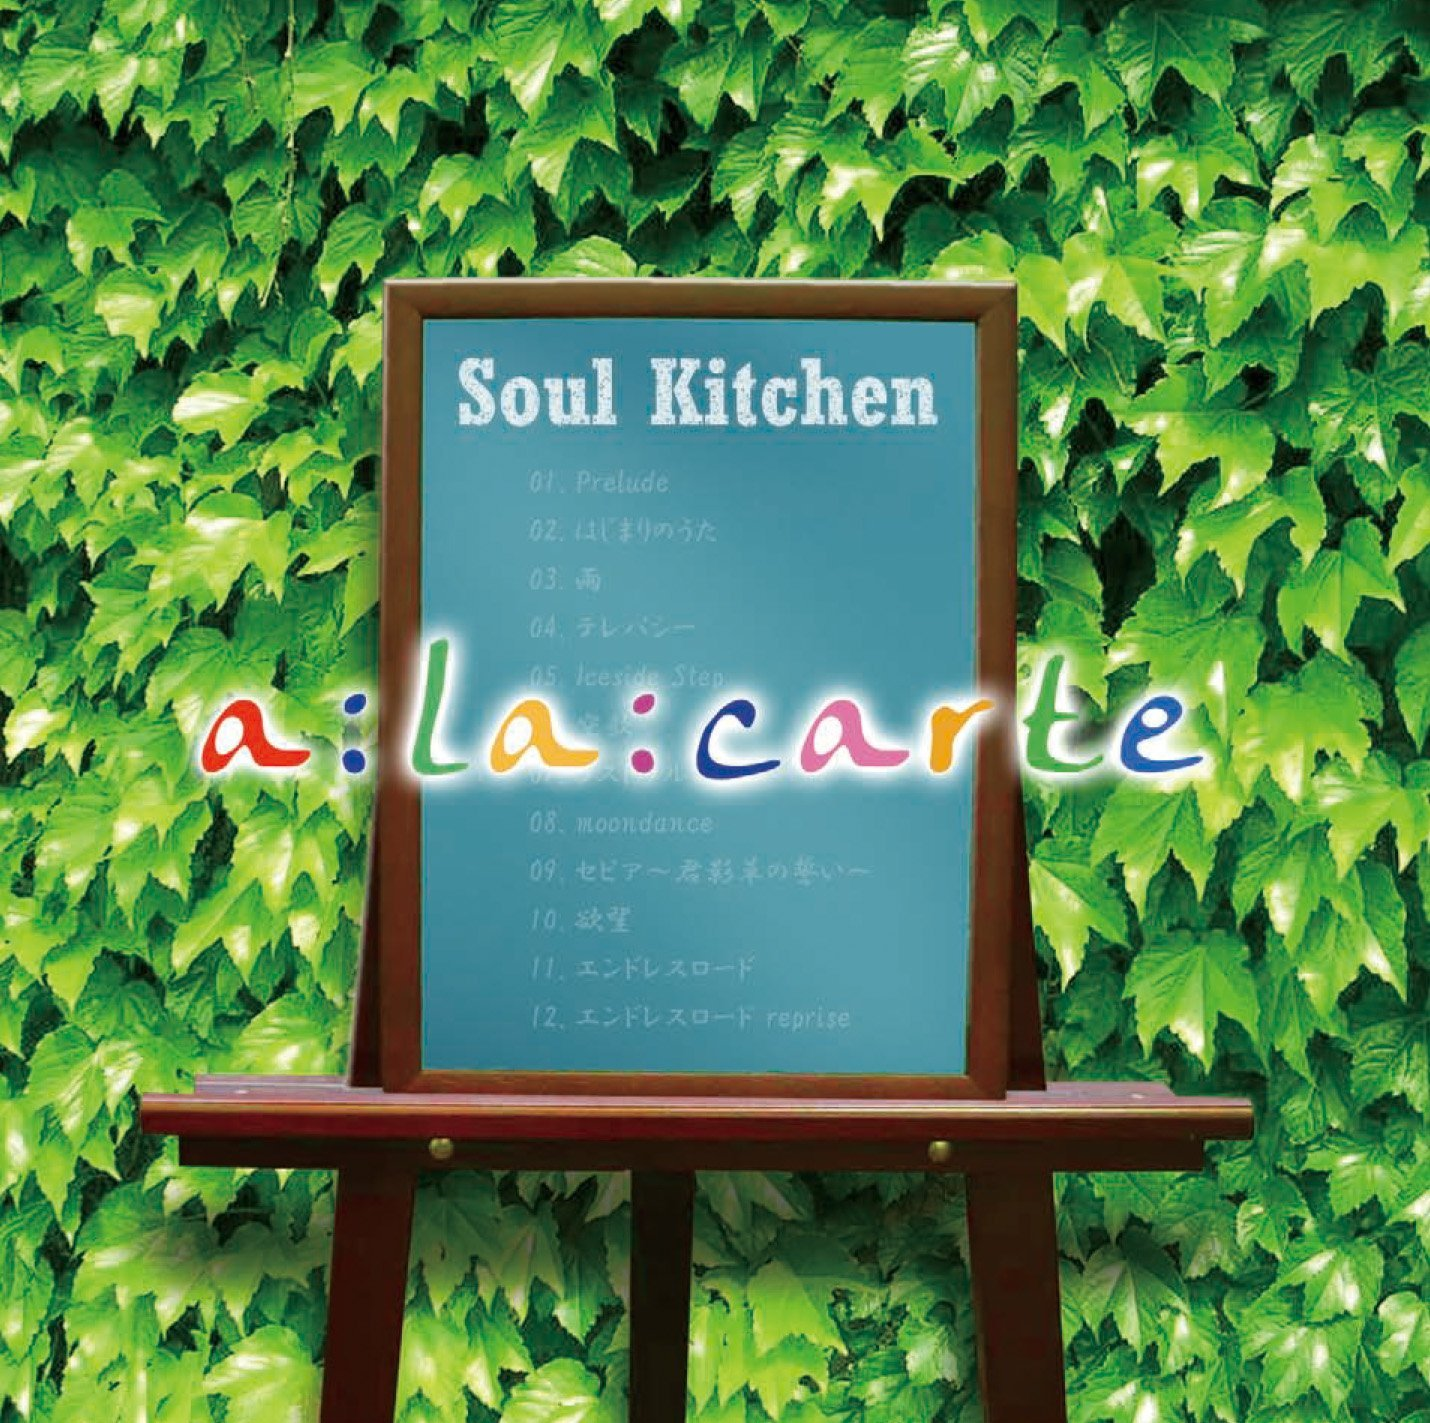 Soul Kitchen 1st Album [ala carte]